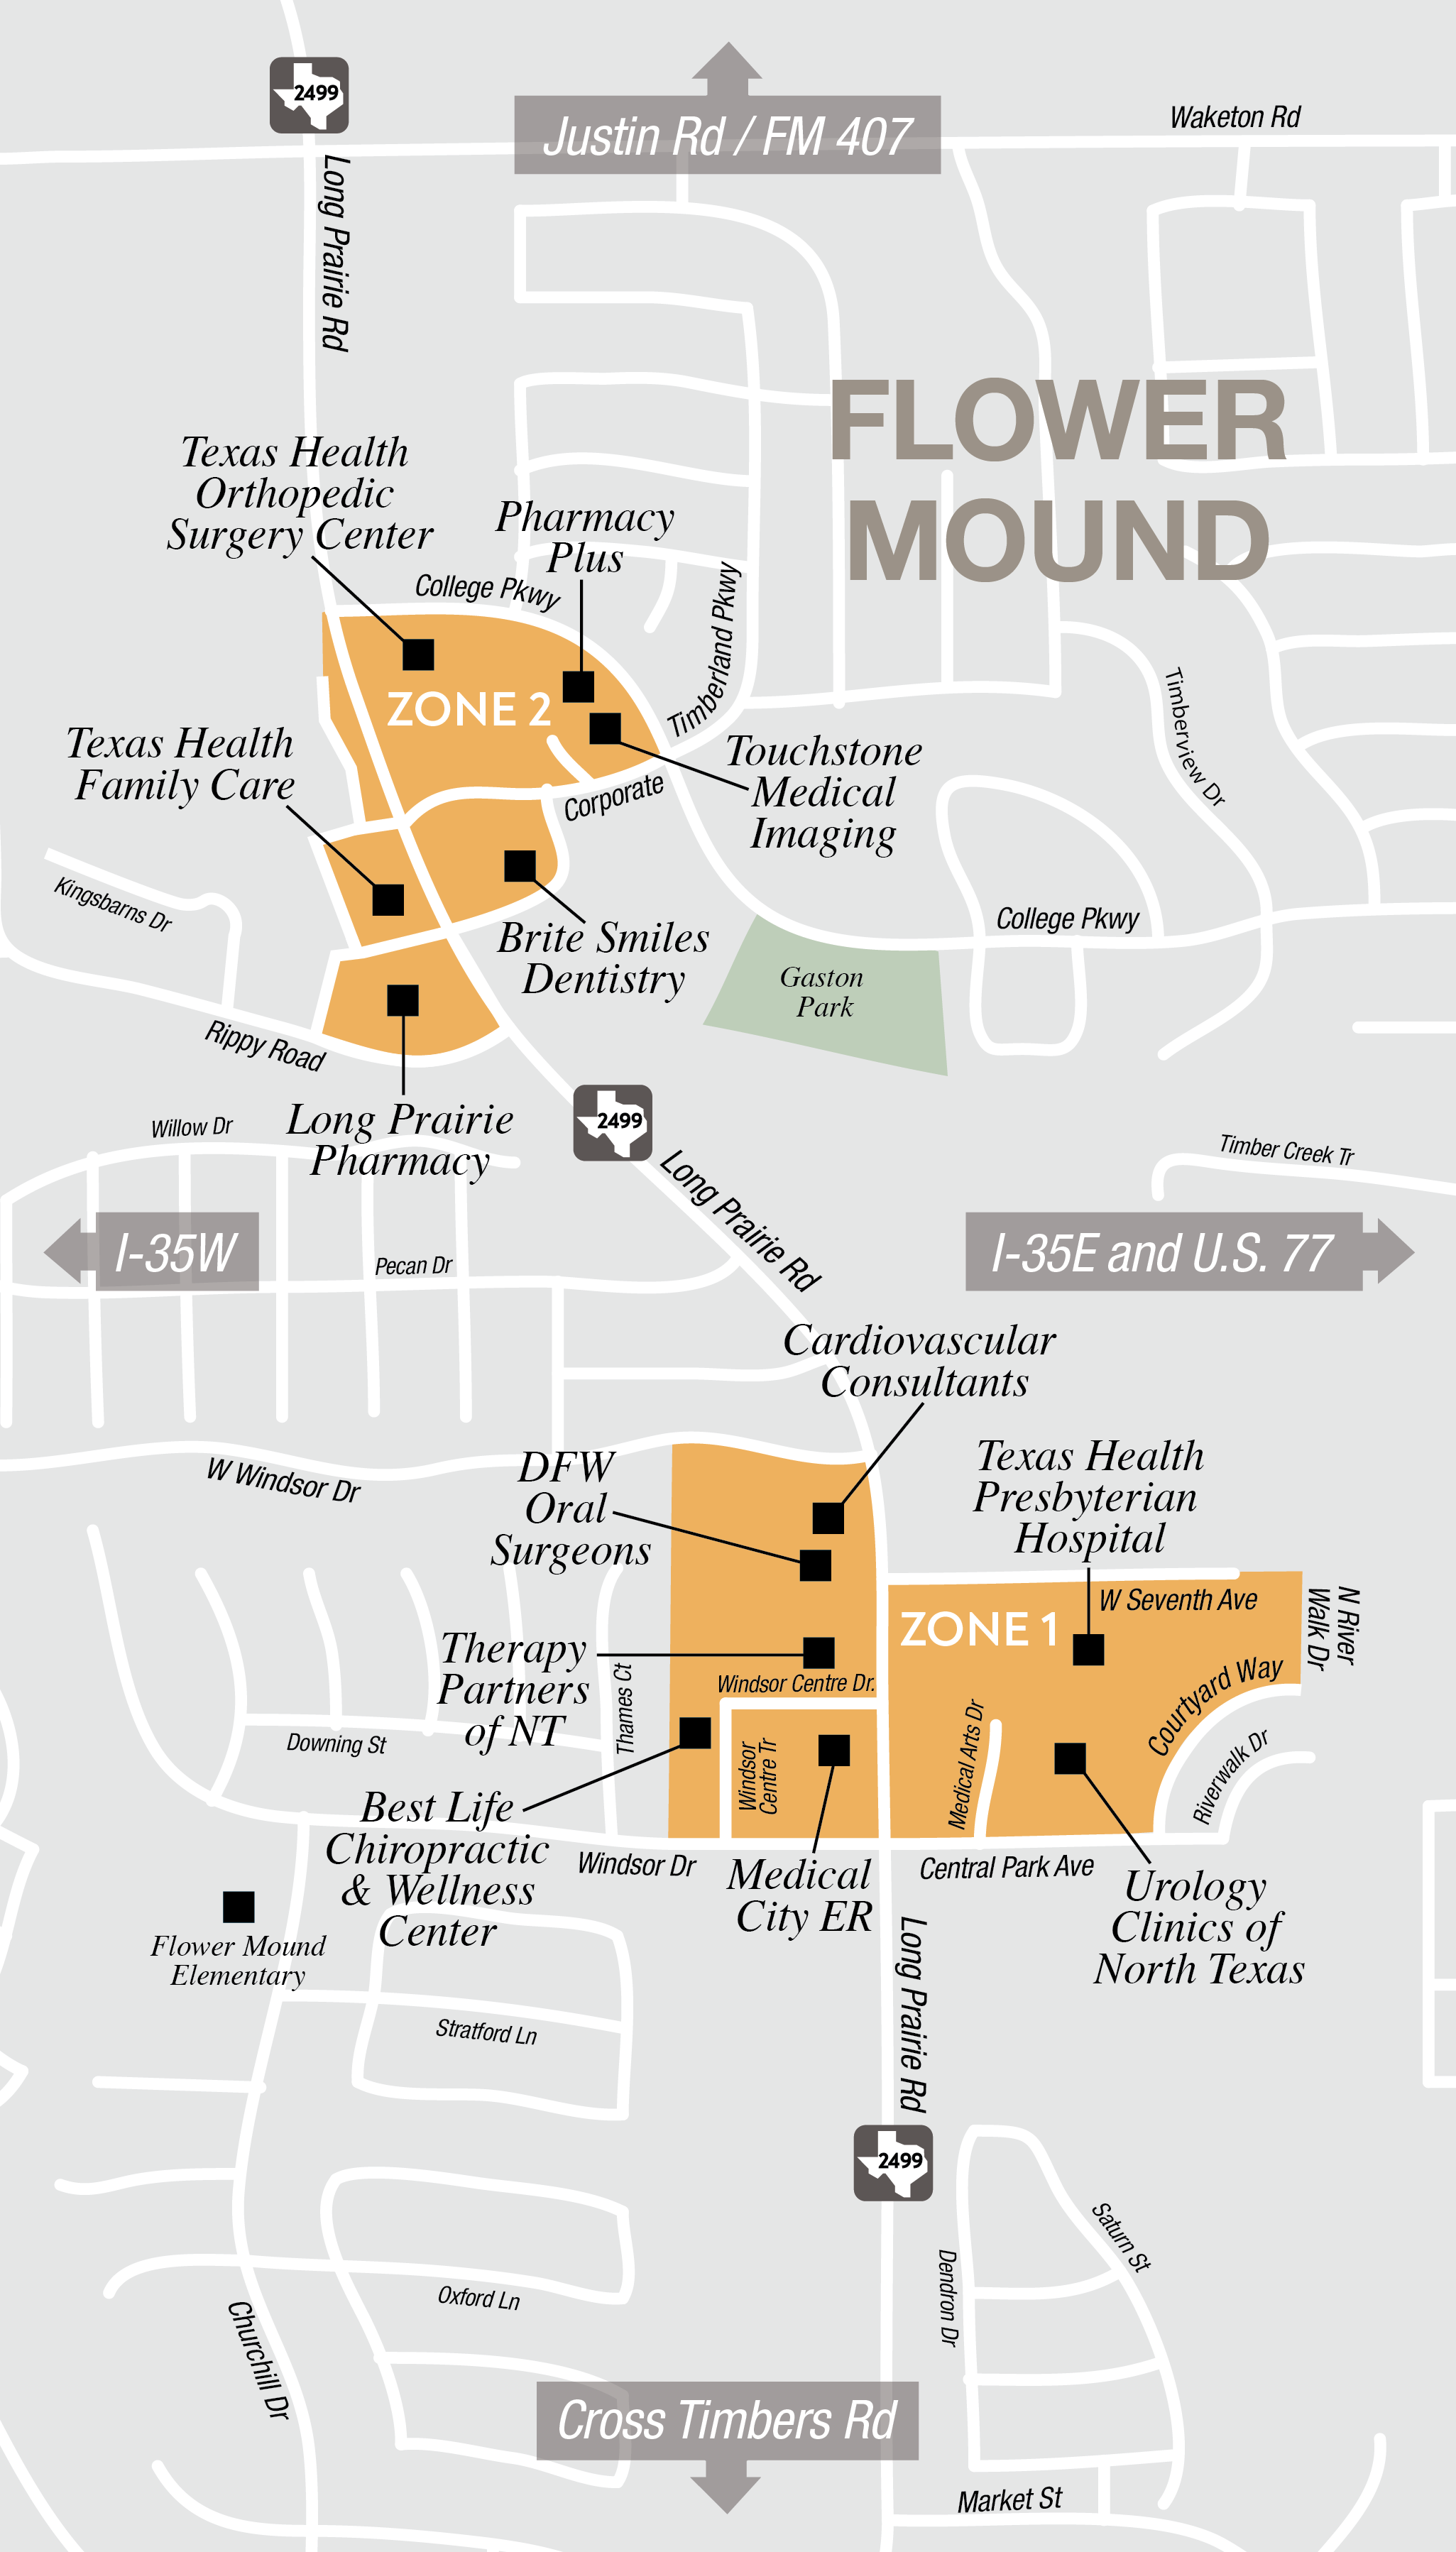 Lewisville Access to Flower Mound Map